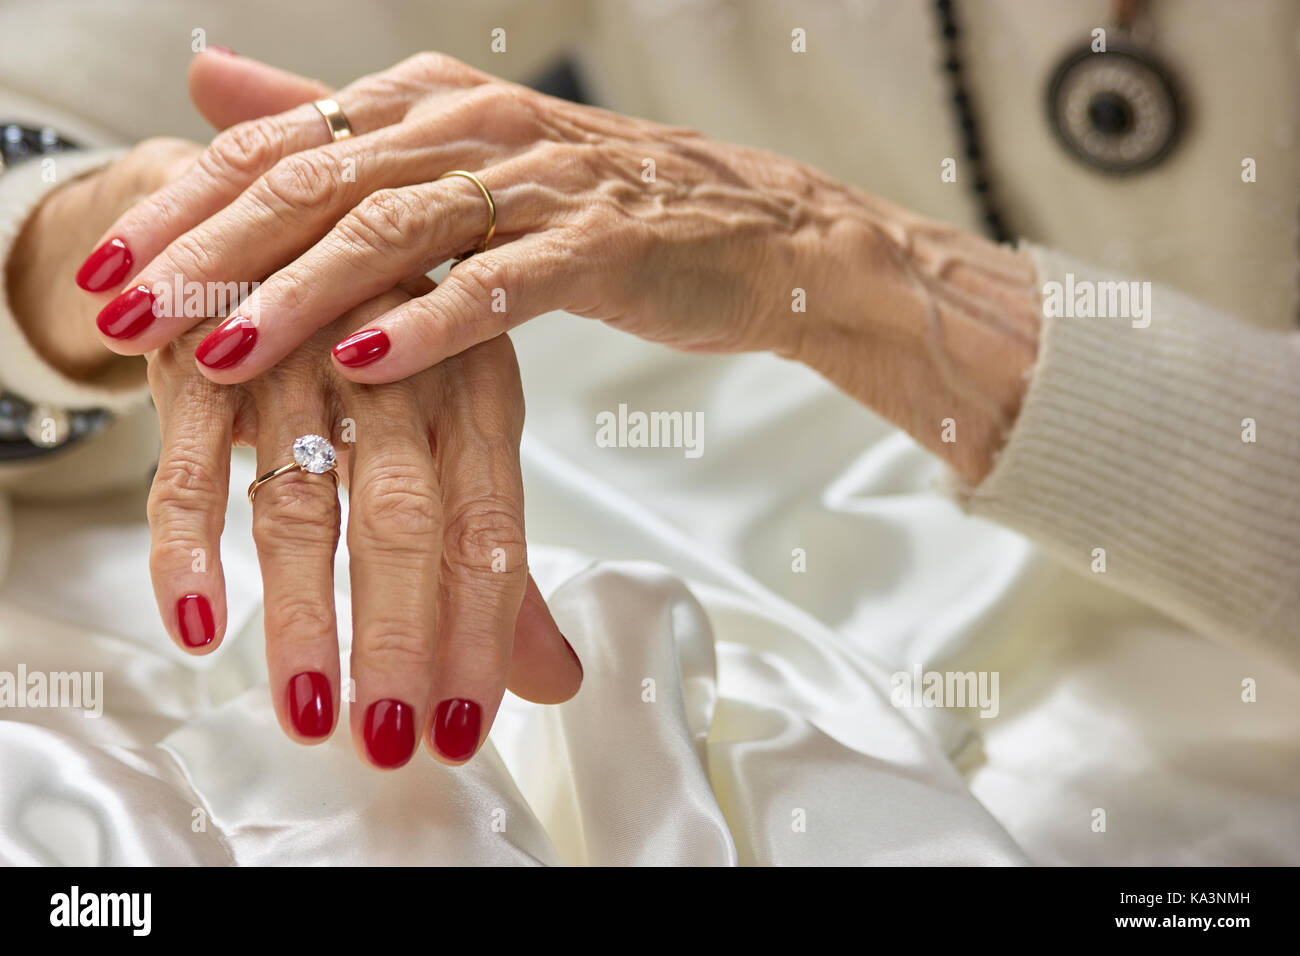 Old woman beautiful hands with rings. Female aged hands with red ...